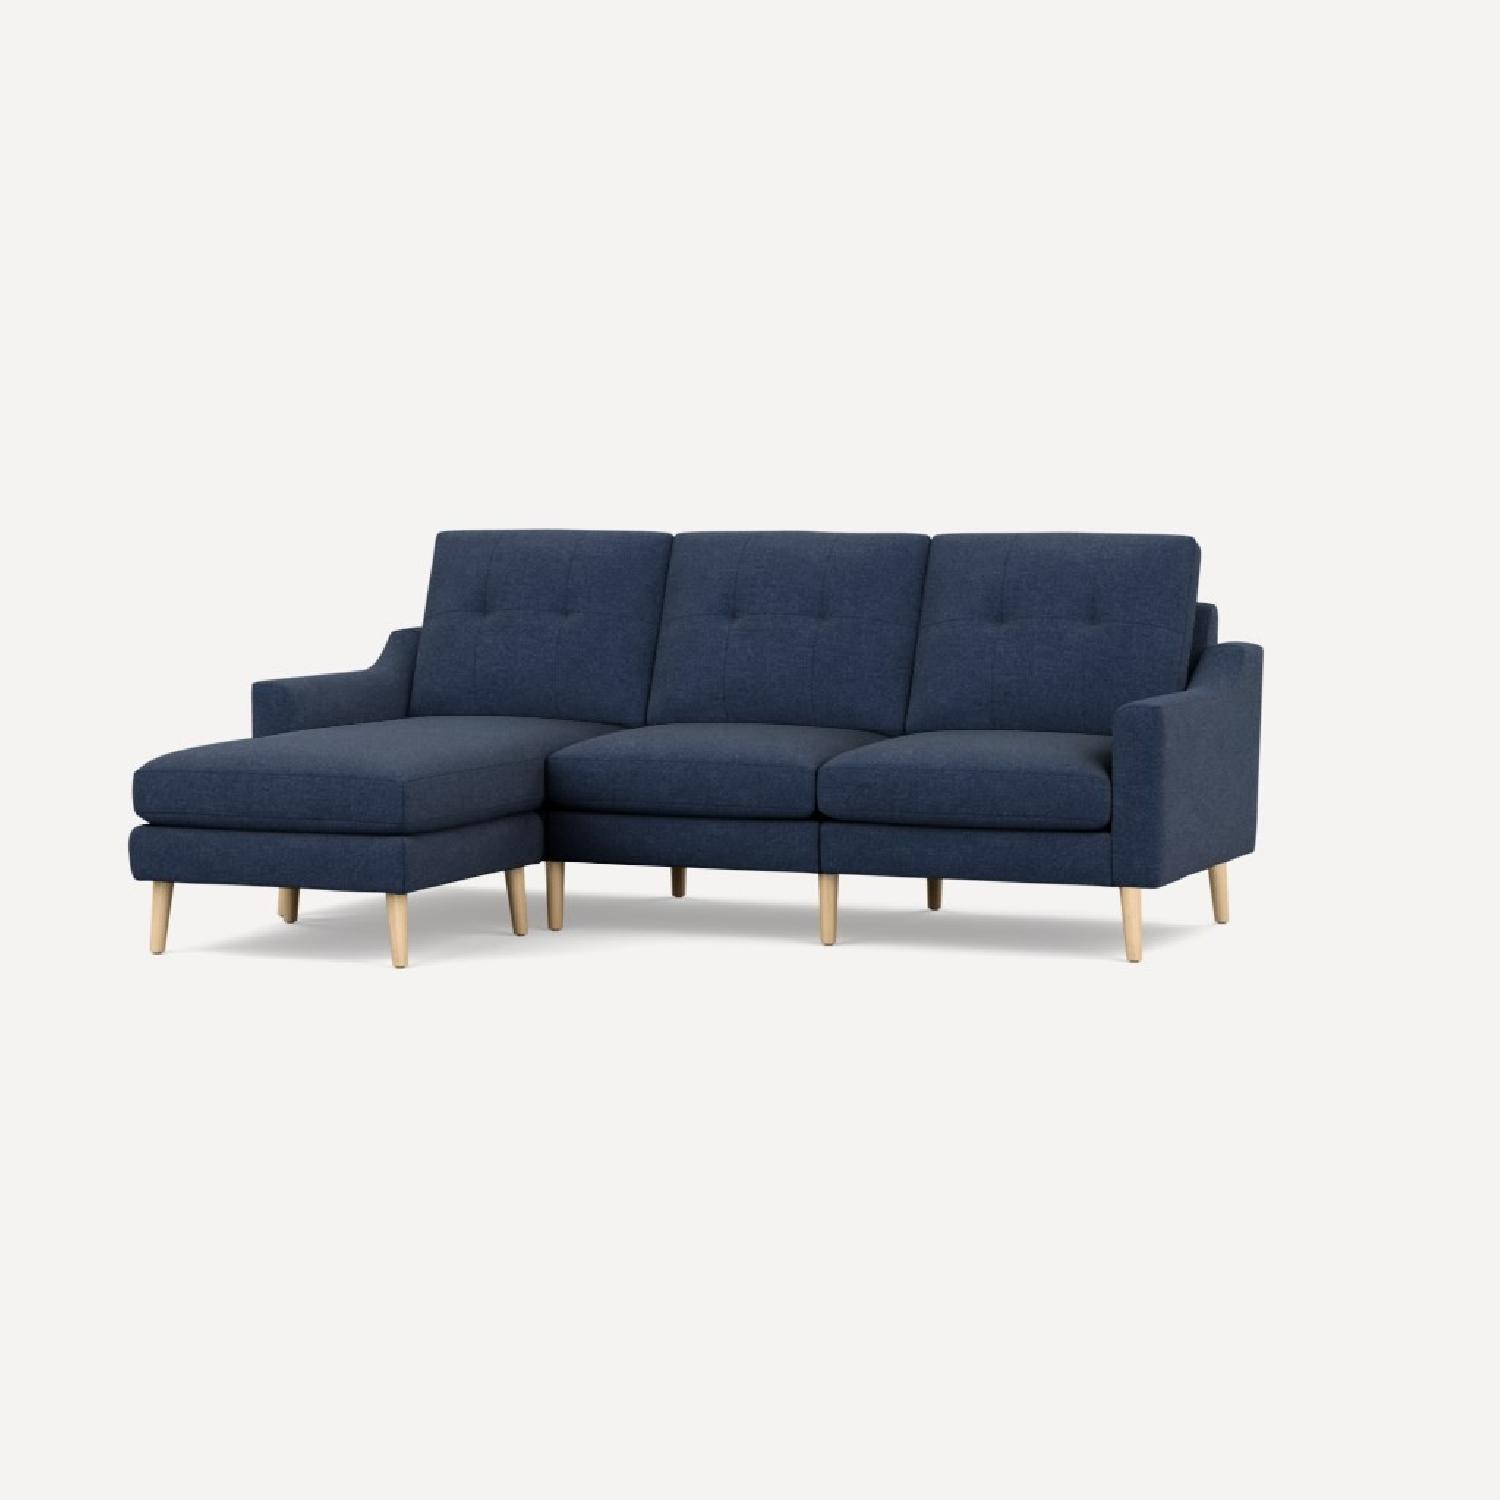 Burrow Nomad Sectional Sofa w/ Chaise - image-9